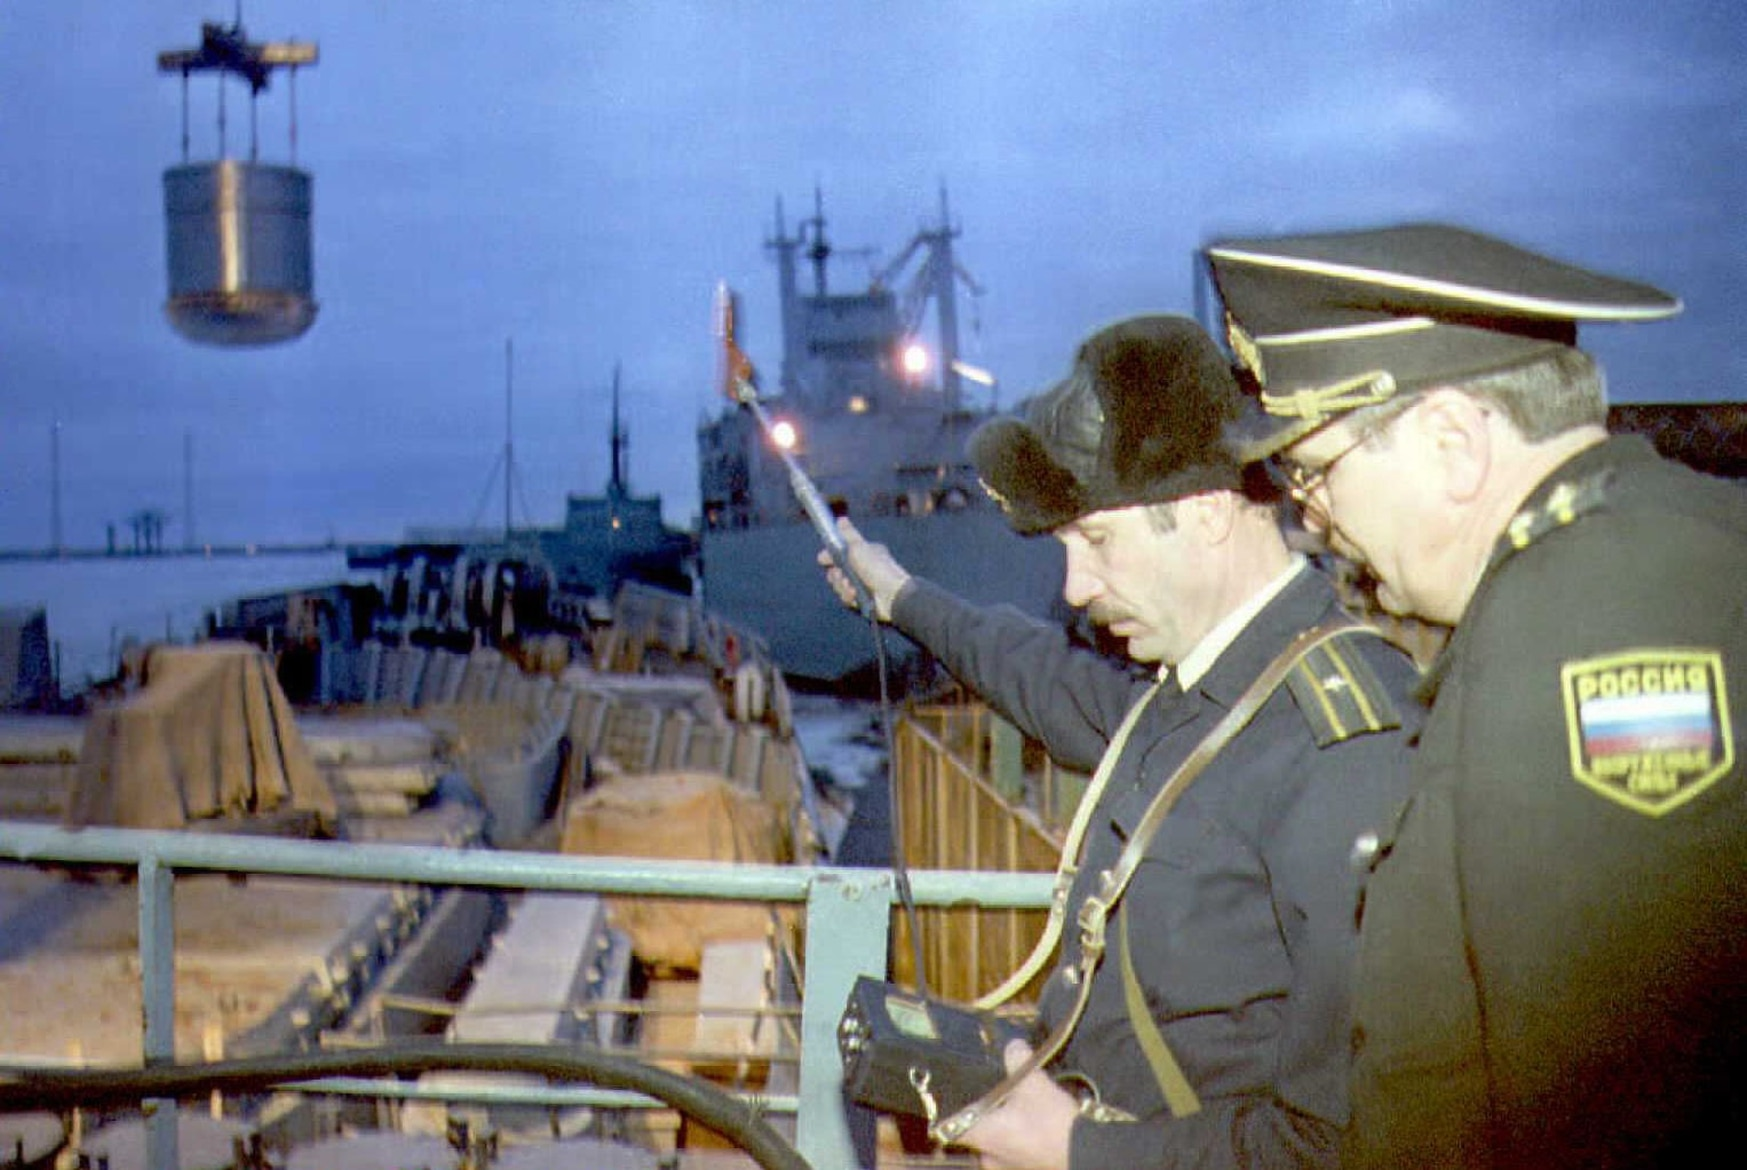 Two Russian Navy officers check radioactive levels during the unloading process of nuclear fuel from a nuclear submarine at the military shipbuilding plant Zvezda in Severodvinsk in March 1995. (EP/AFP via Getty Images)